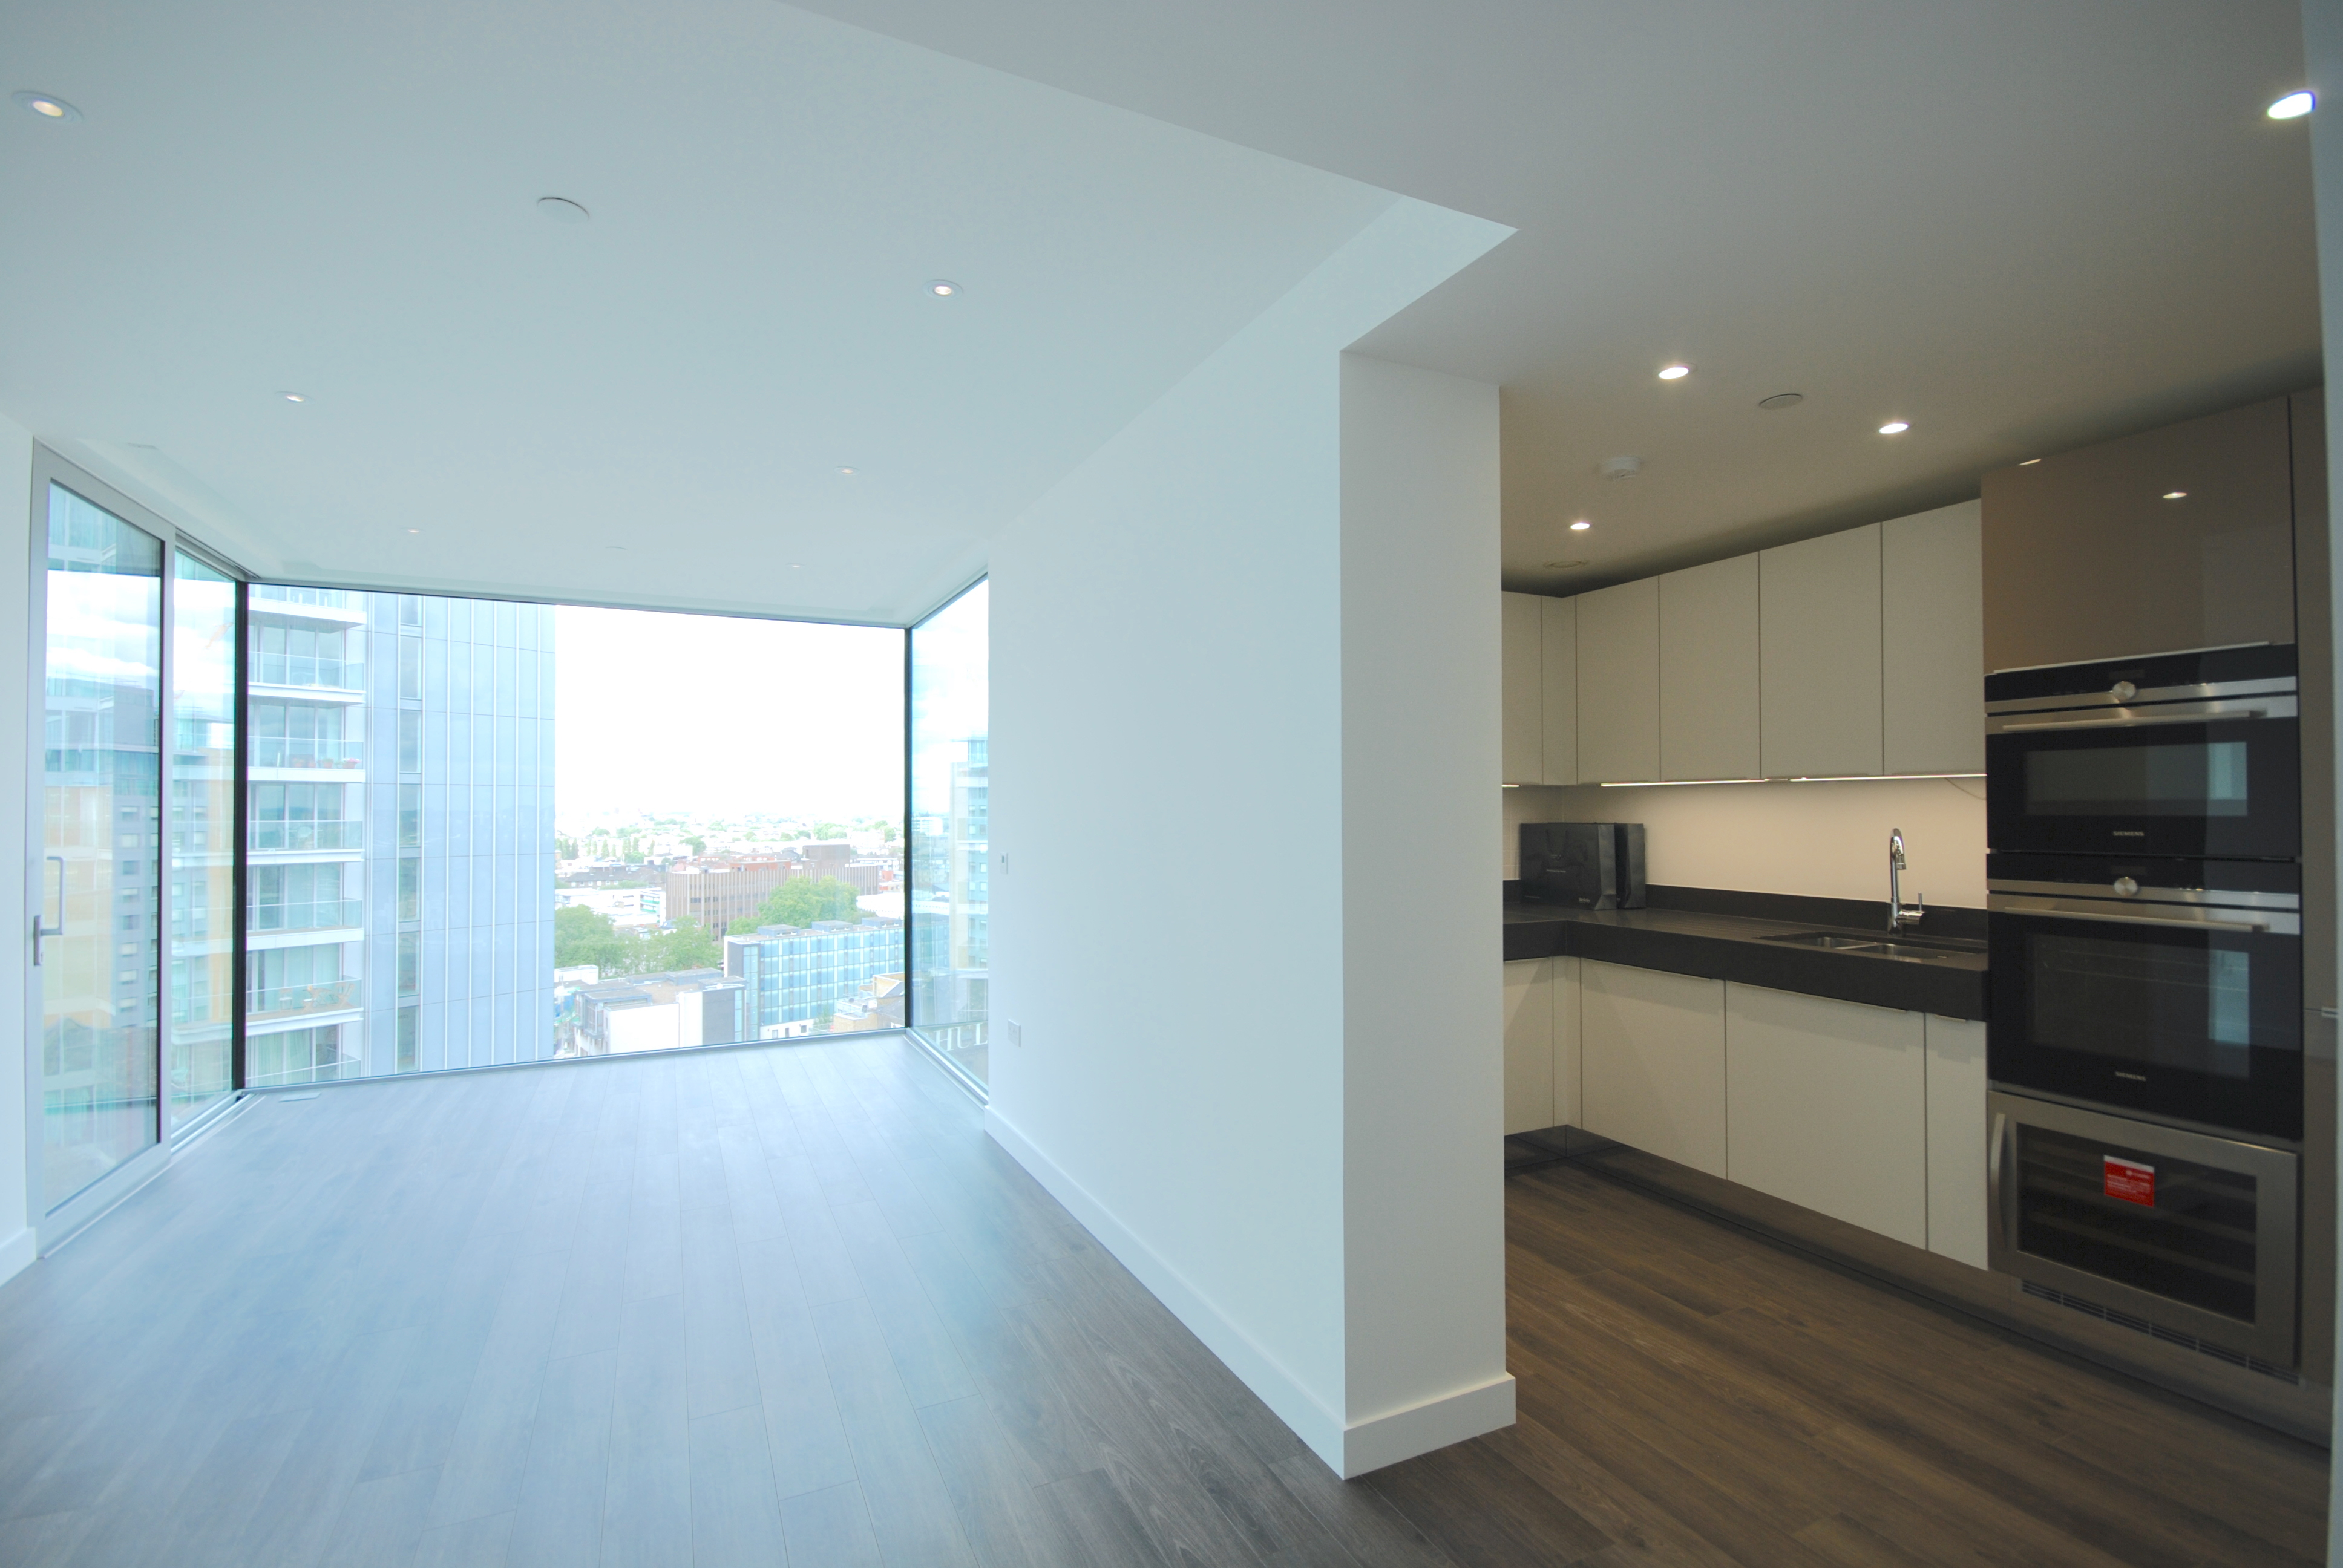 To Let - Two bedroom flat, Aldgate East, London, E1